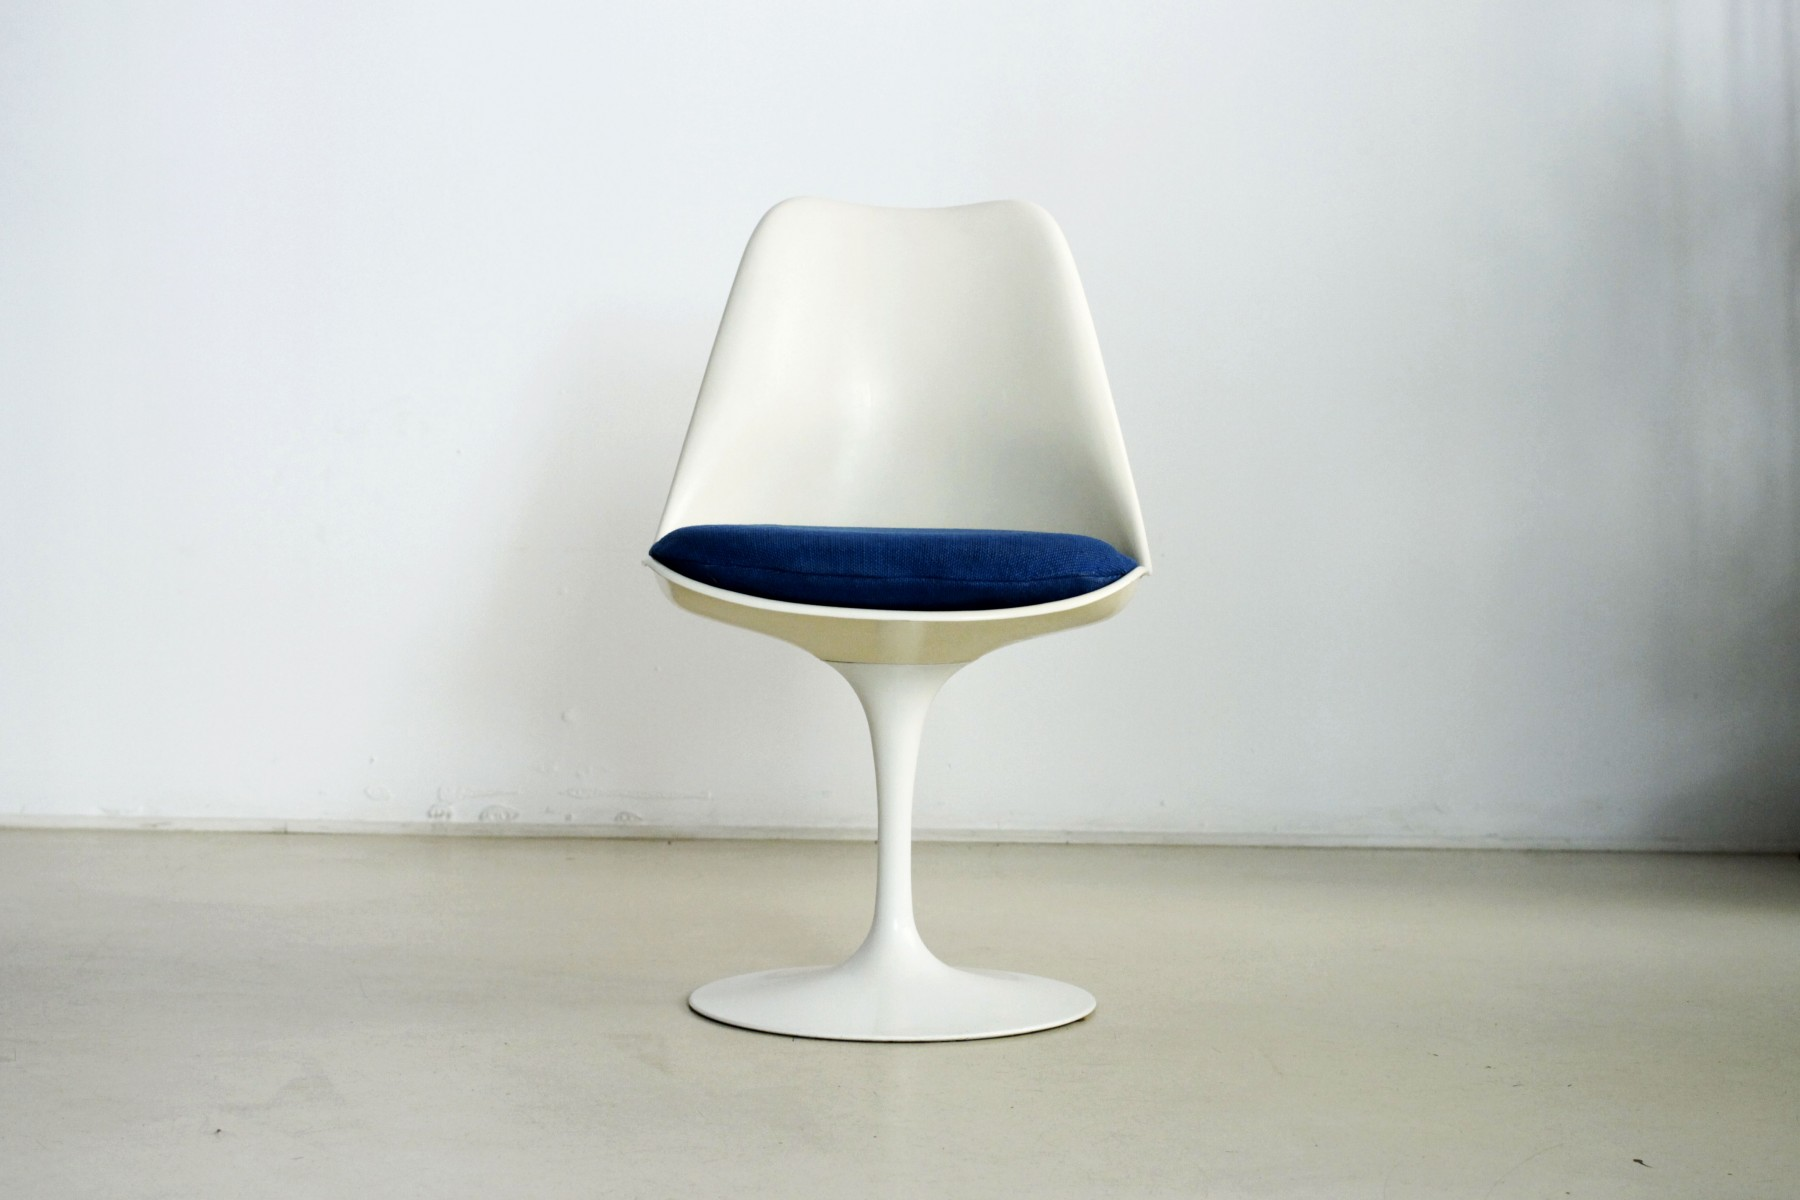 american-fixed-tulip-chair-in-blue-by-eero-saarinen-for-knoll-1970-pamono